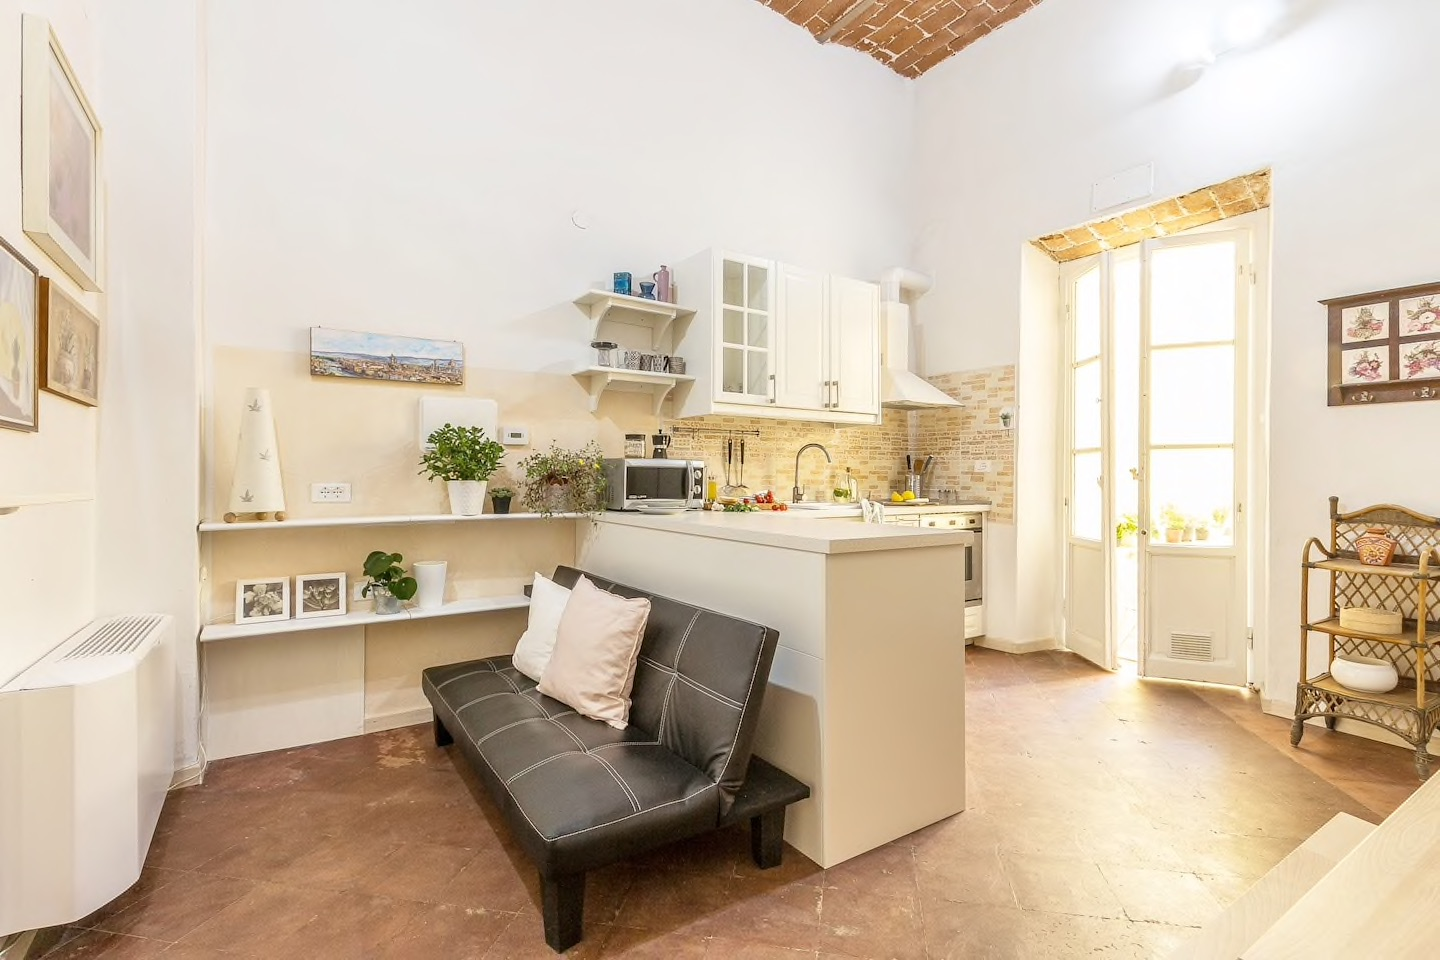 This beautiful Florence Airbnb is located in one of the most charming neighborhoods in Florence!